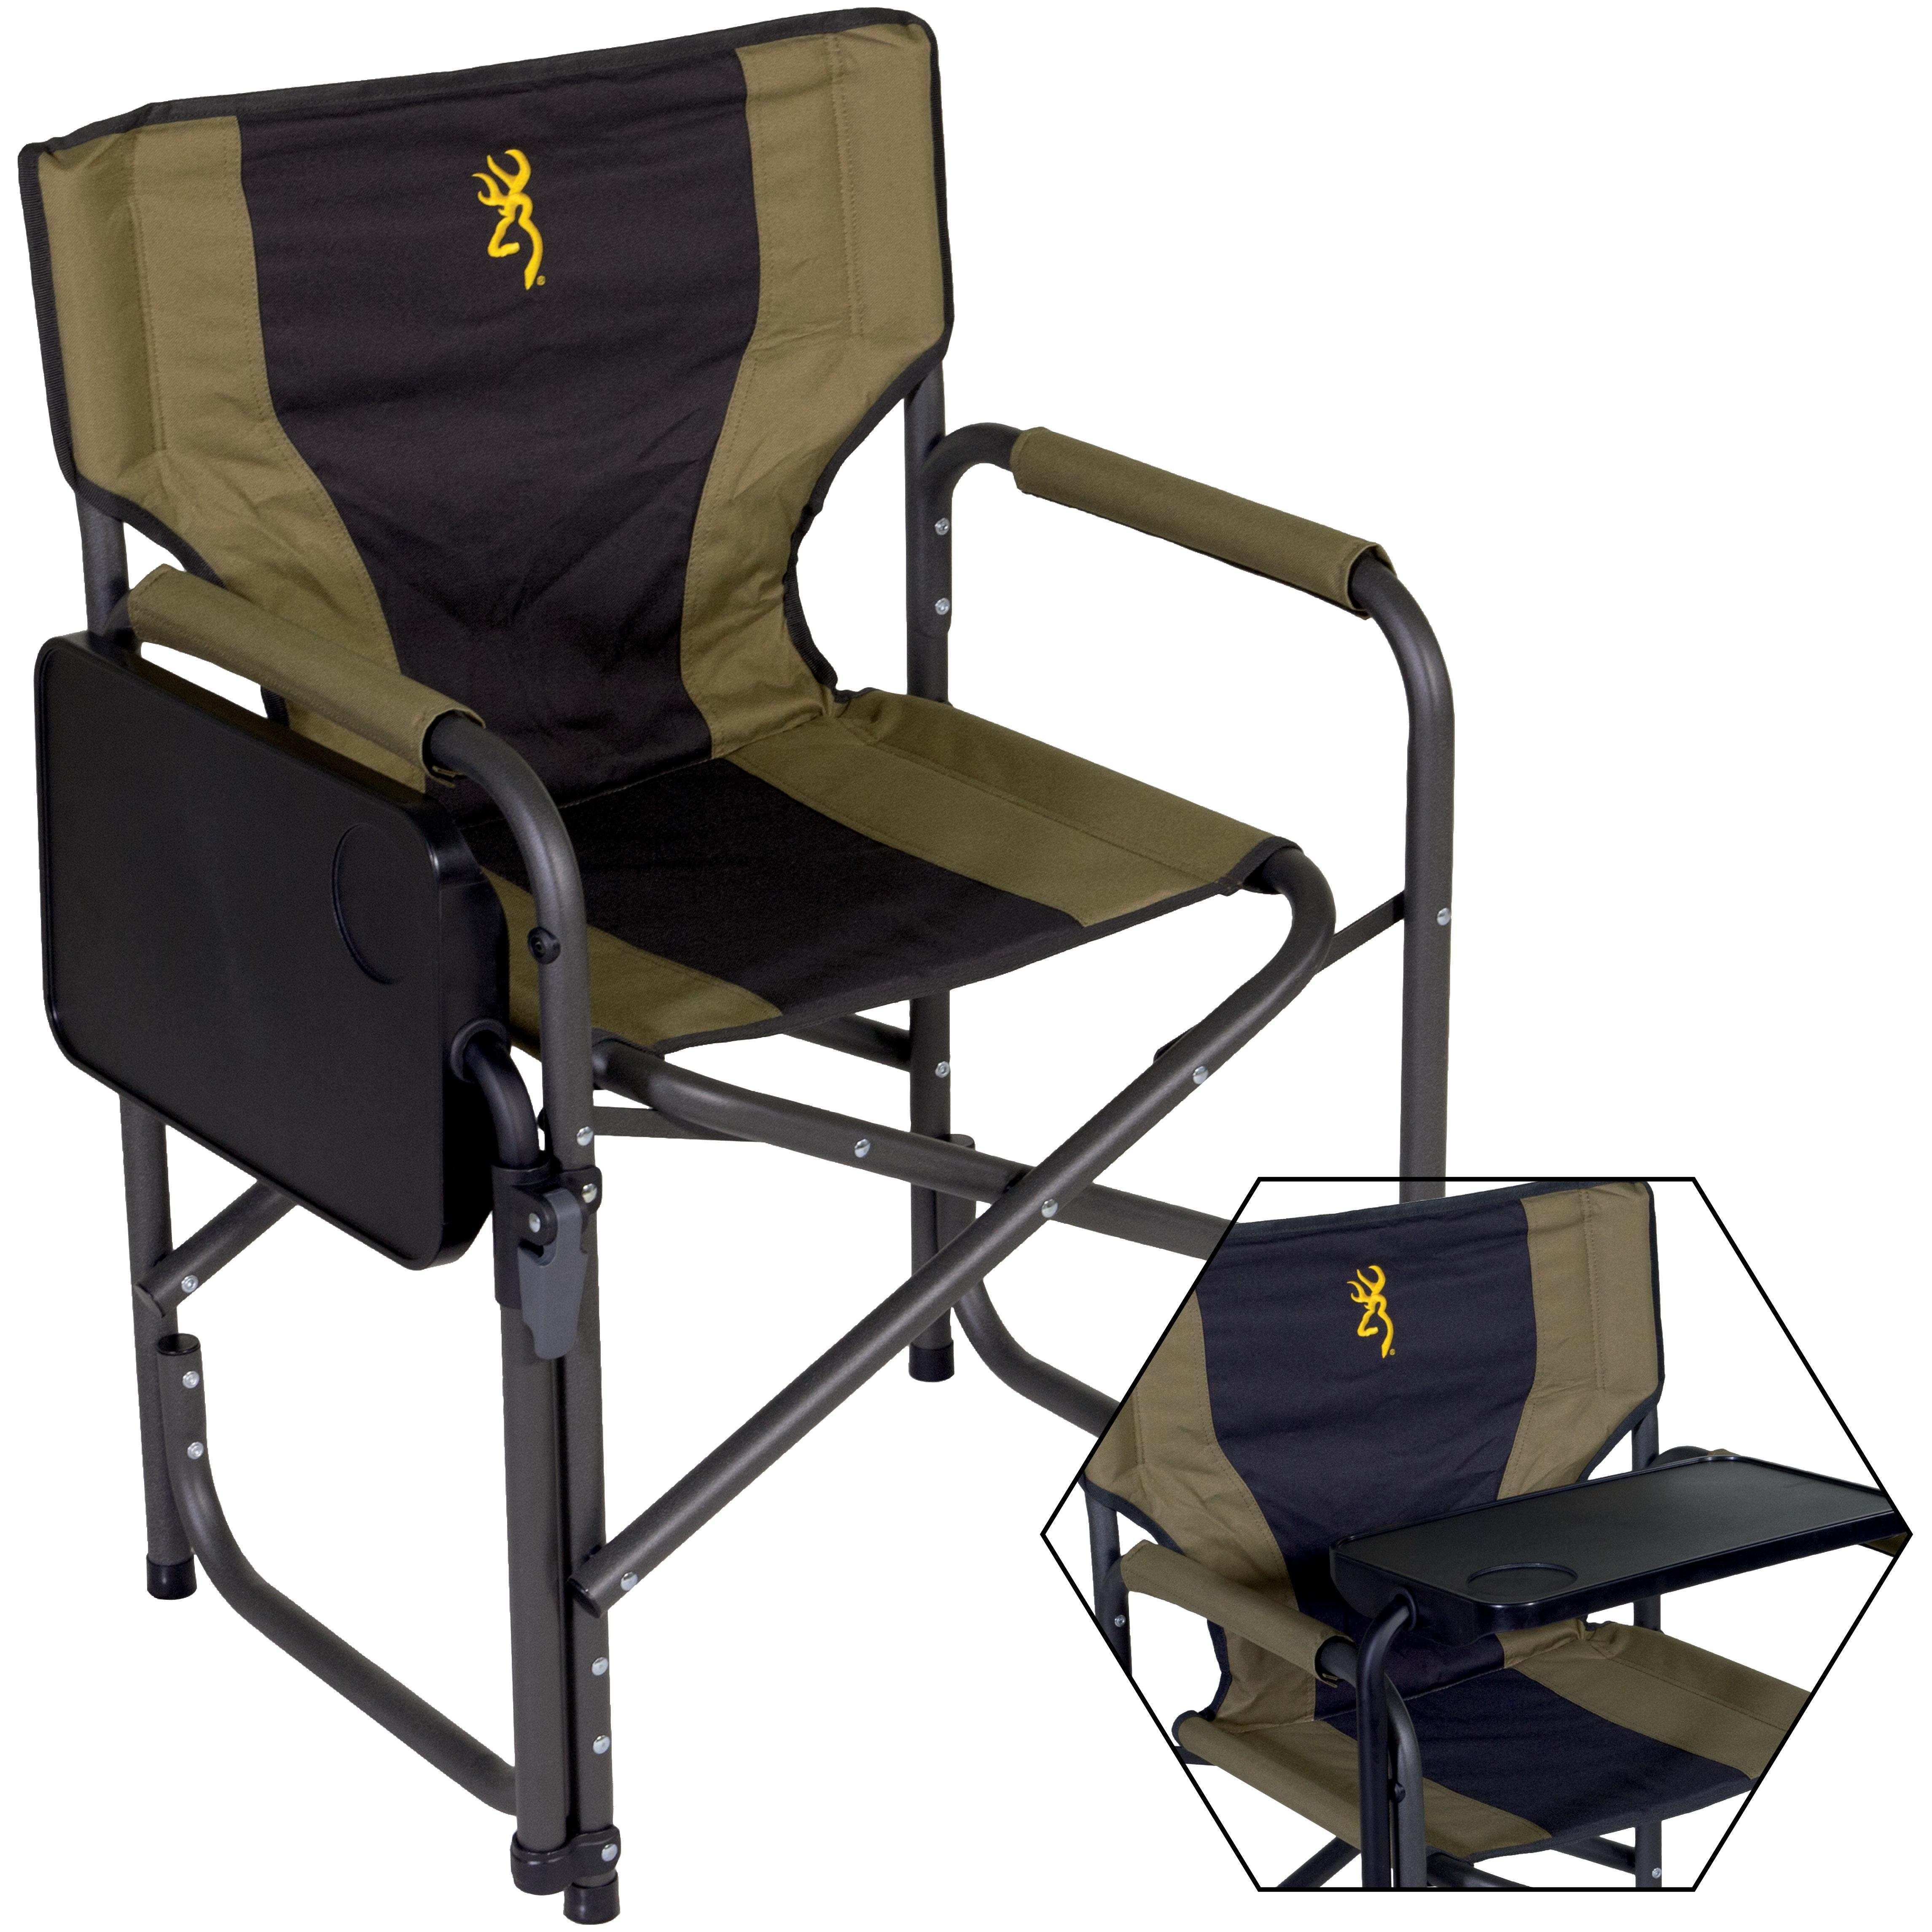 Strange Browning Camping Rimfire Chair Andrewgaddart Wooden Chair Designs For Living Room Andrewgaddartcom